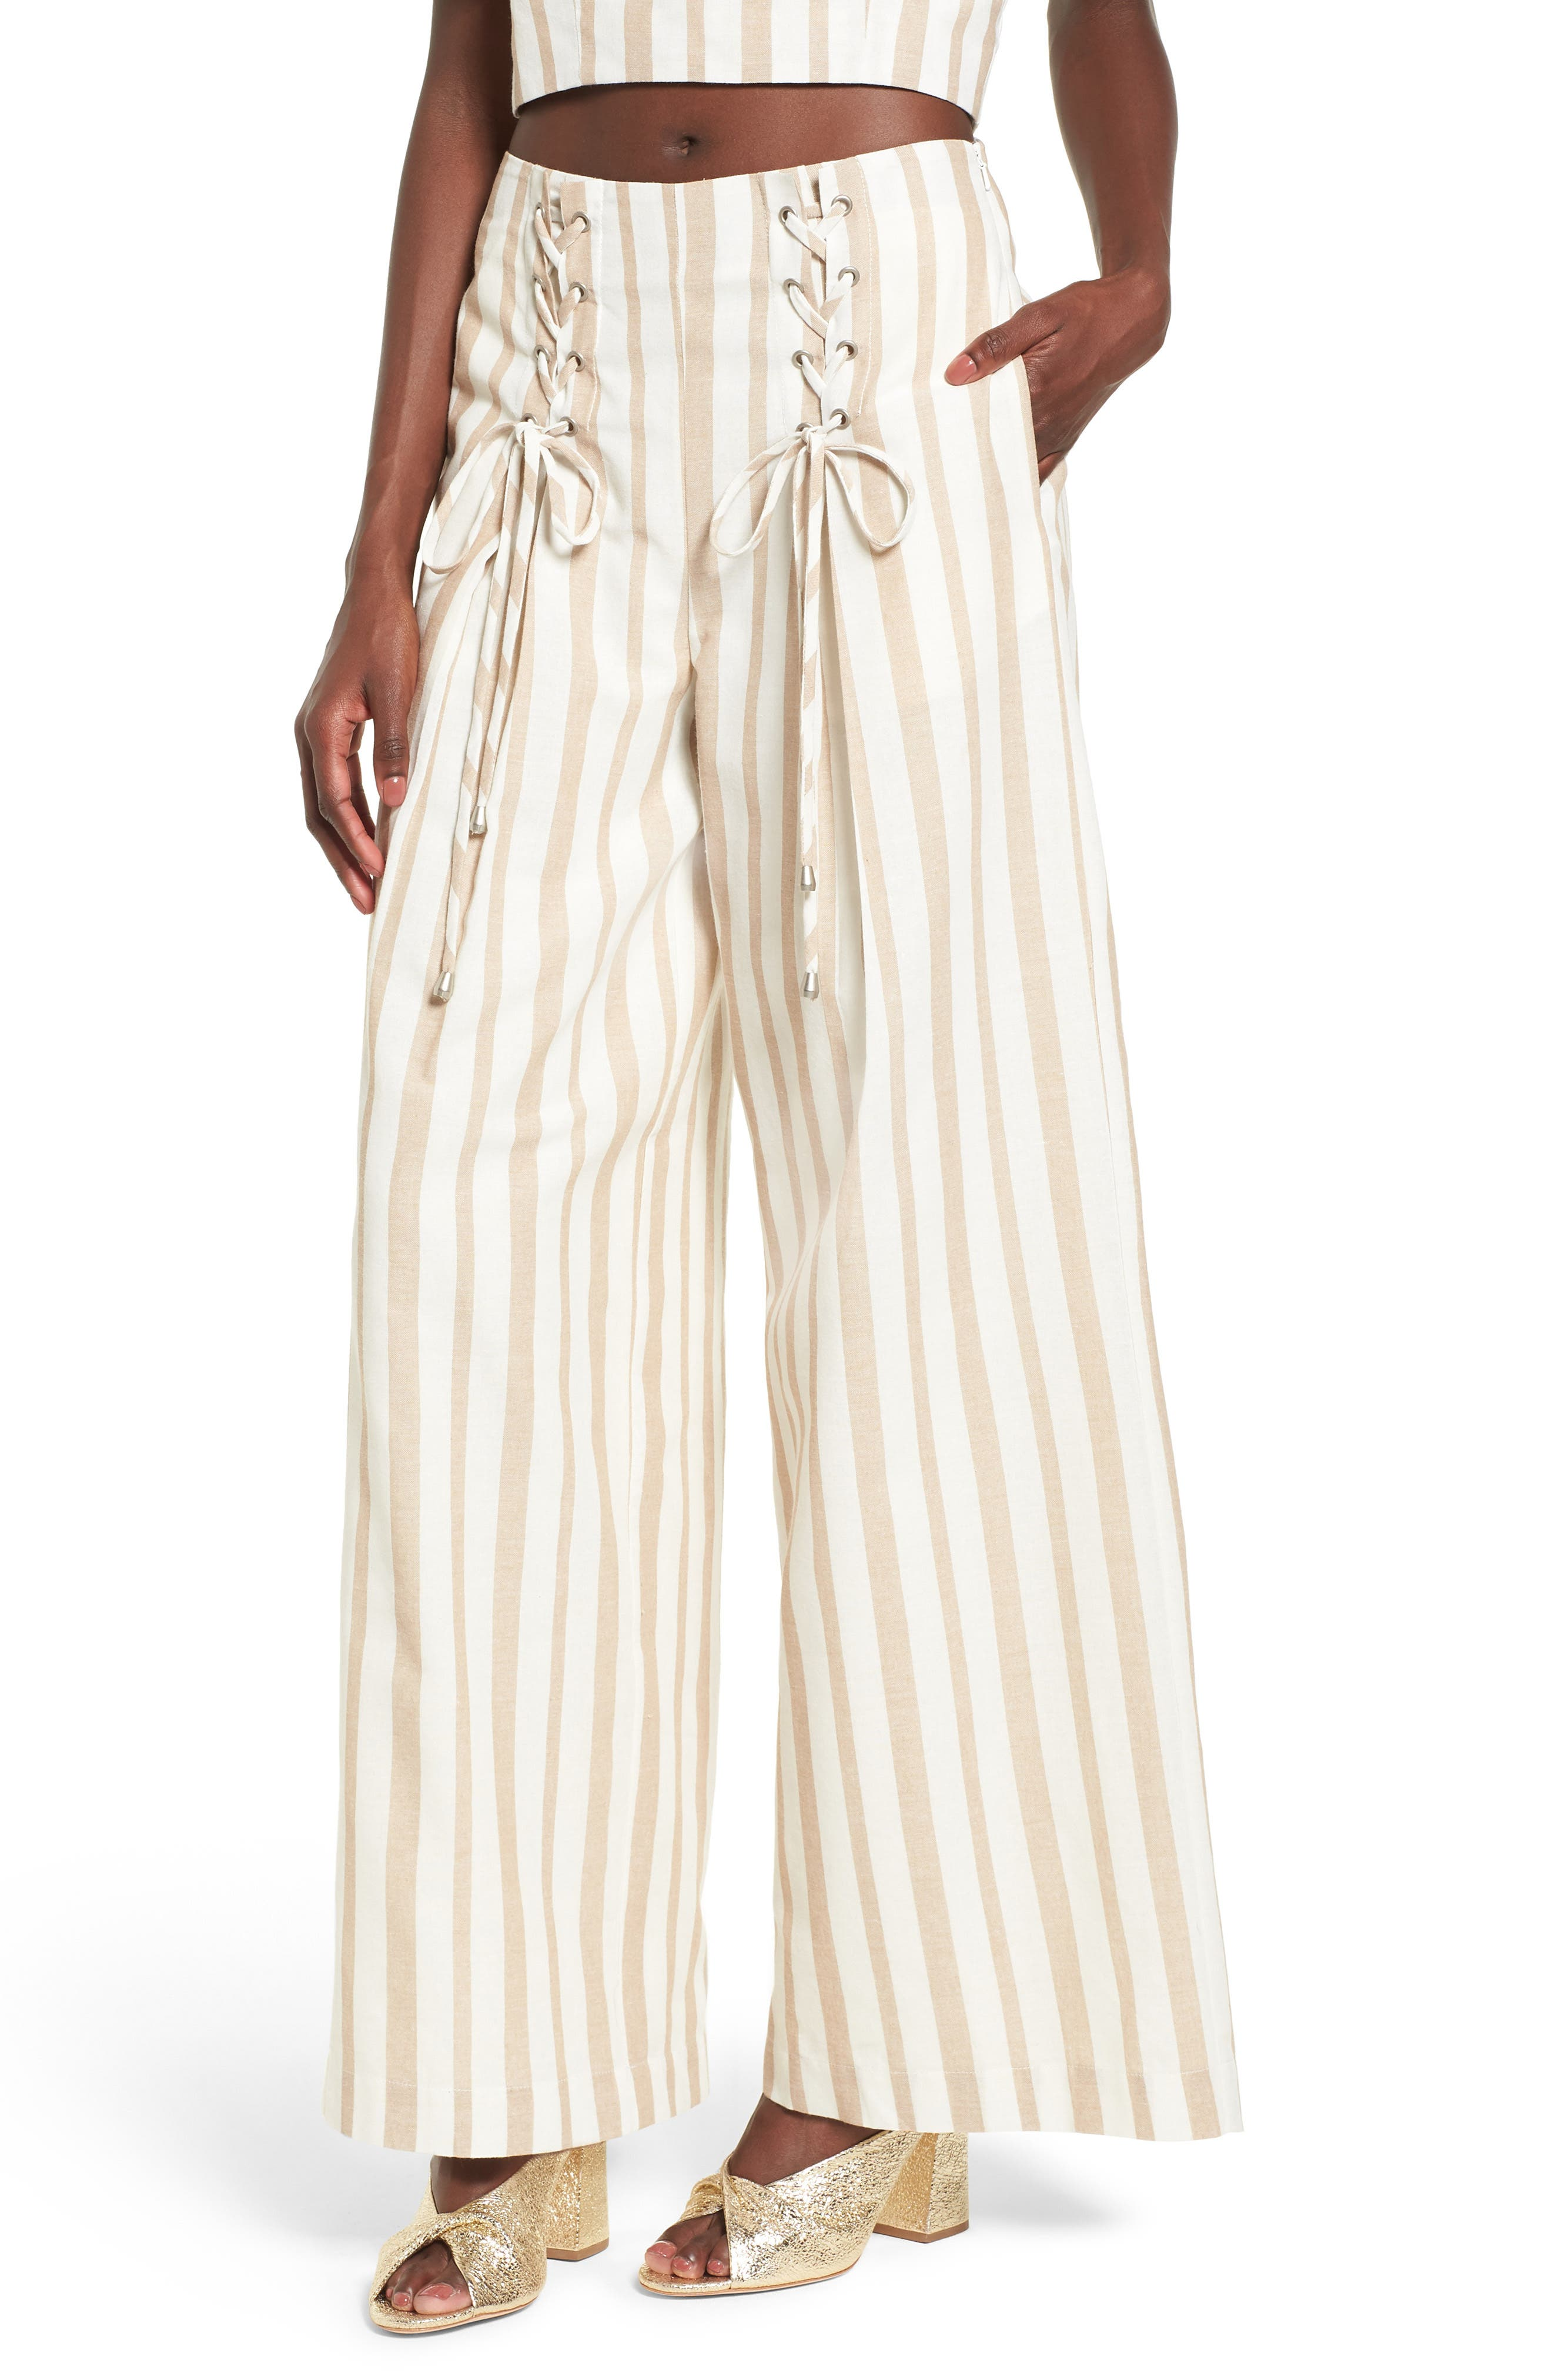 Chriselle x J.O.A. Lace-Up High Waist Wide Leg Pants,                         Main,                         color, 250